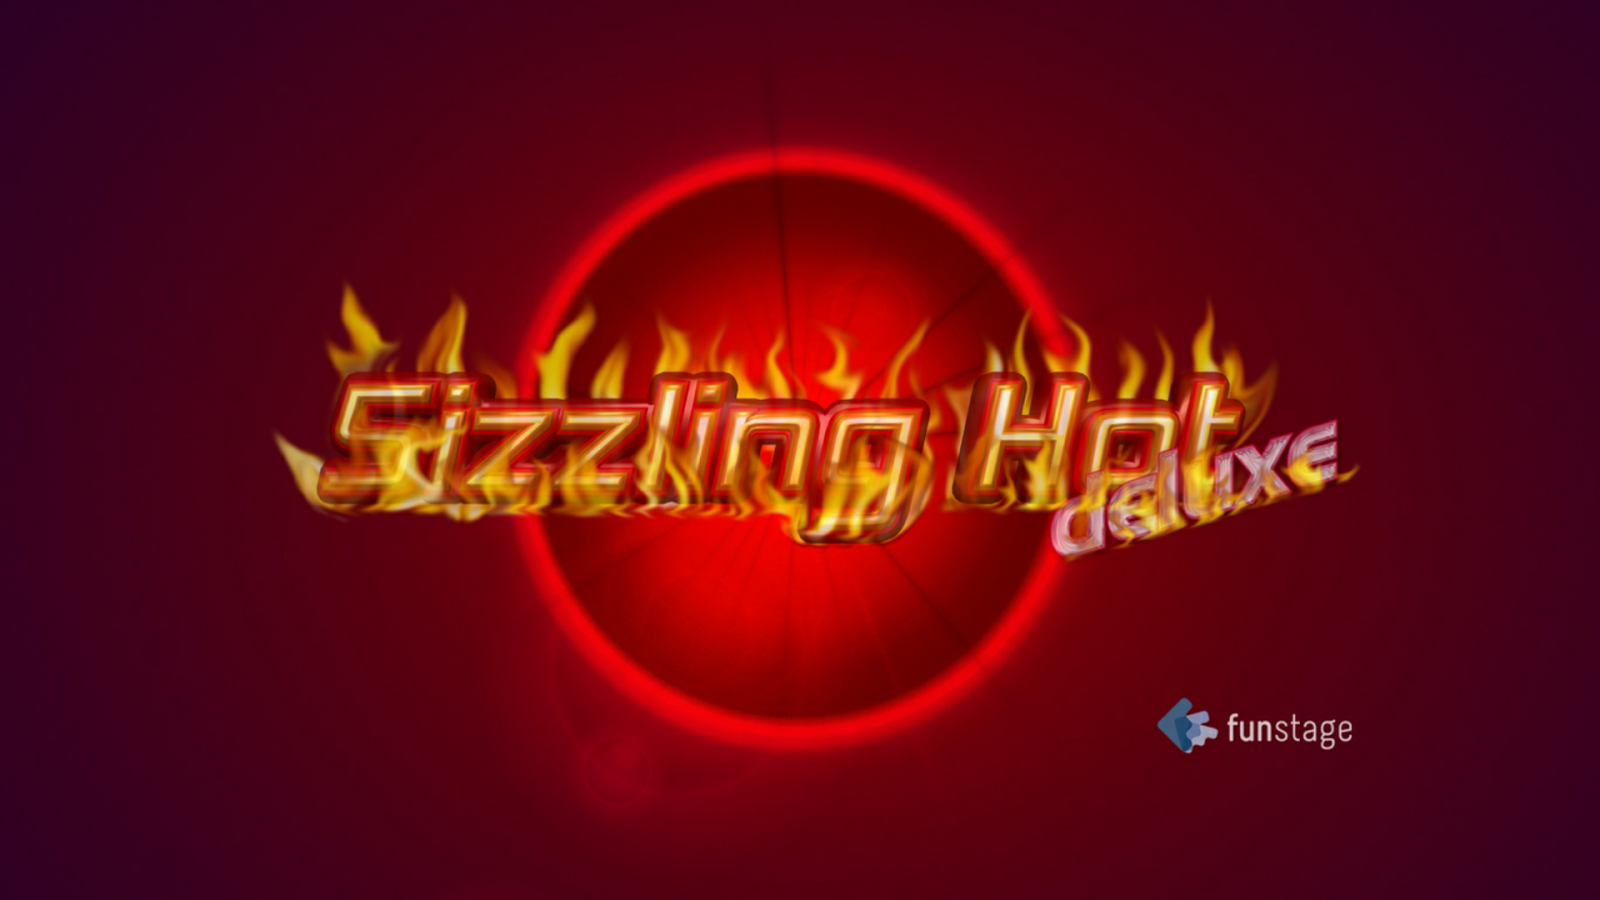 sizzling hot demo download